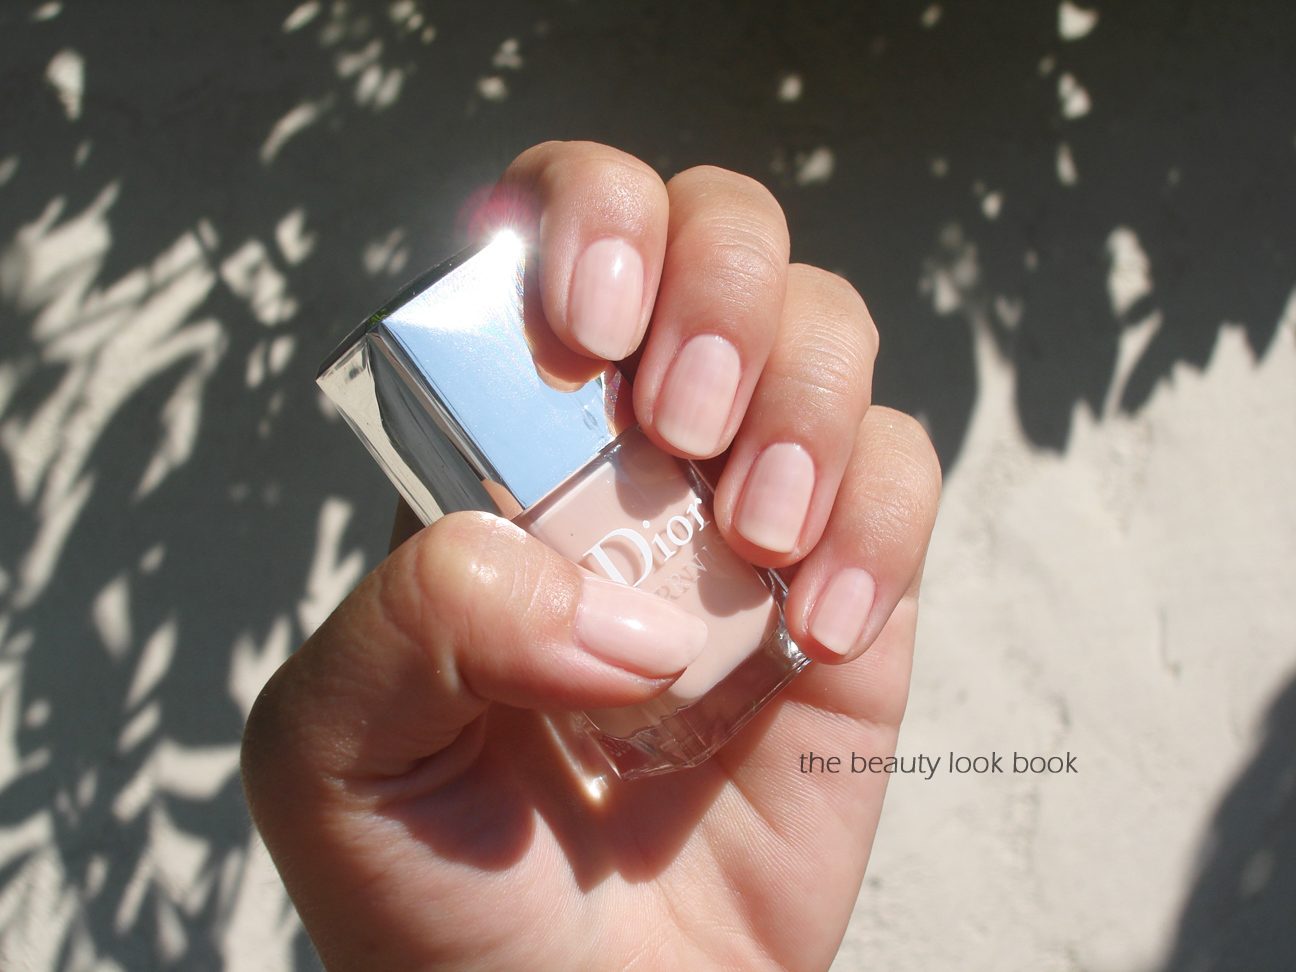 Dior Vernis Nudes in Charnelle, Grège, Trench and Dune